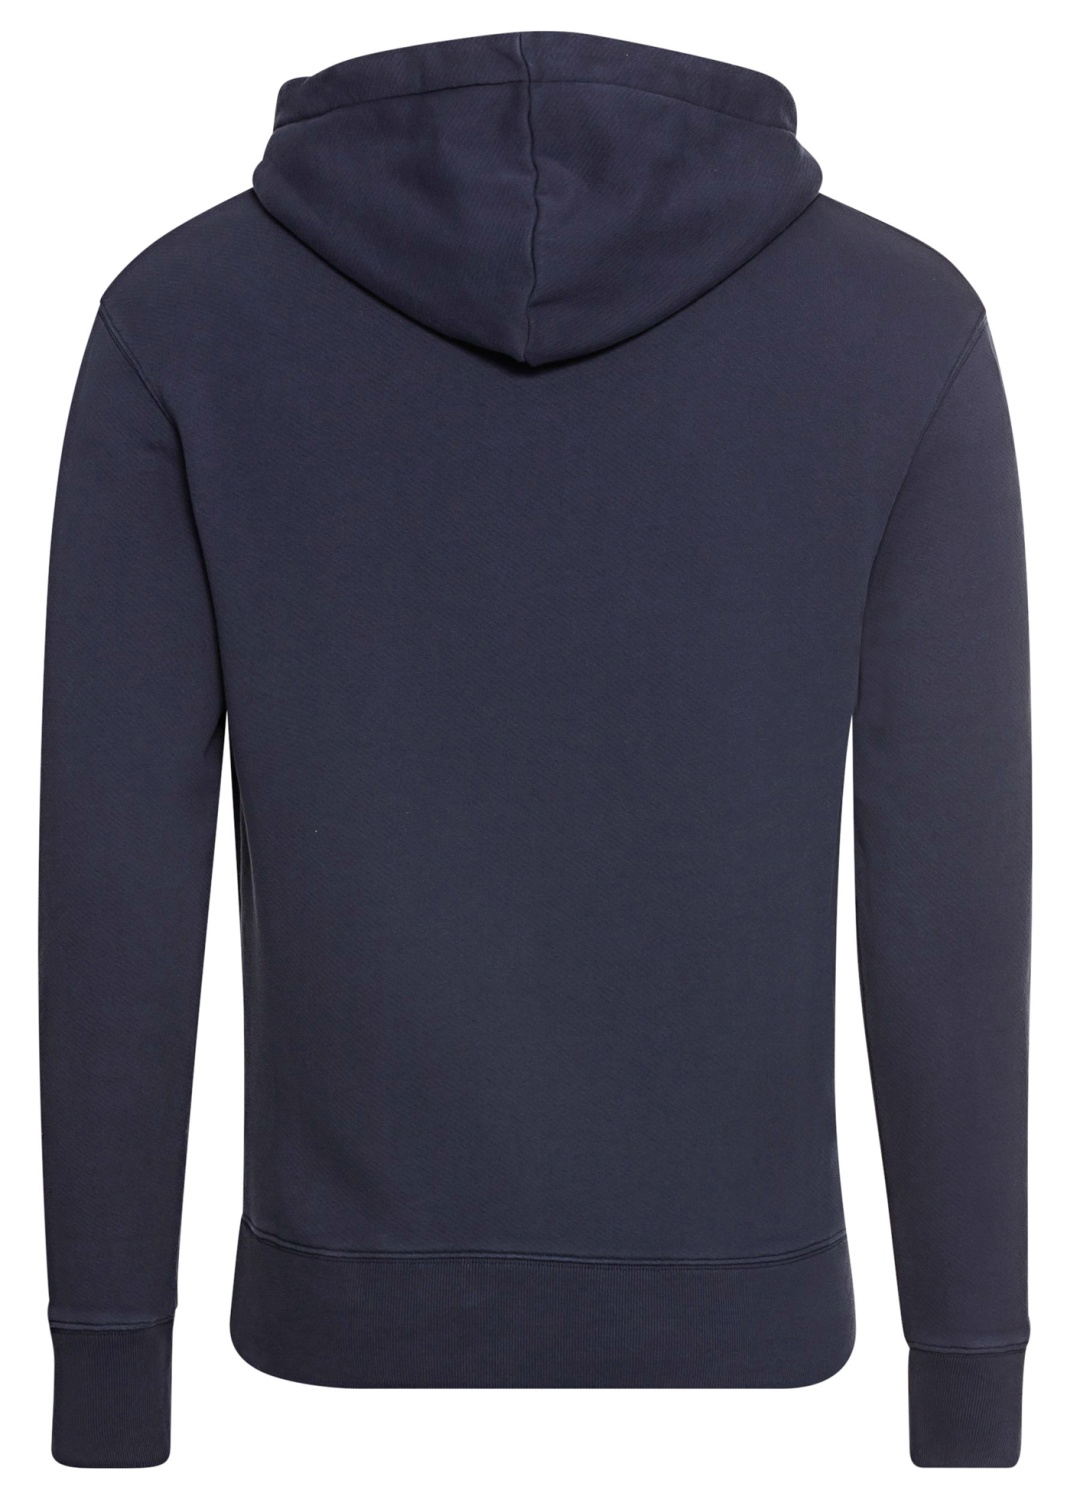 GREY FOX HEAD PATCH CLASSIC HOODIE image number 1